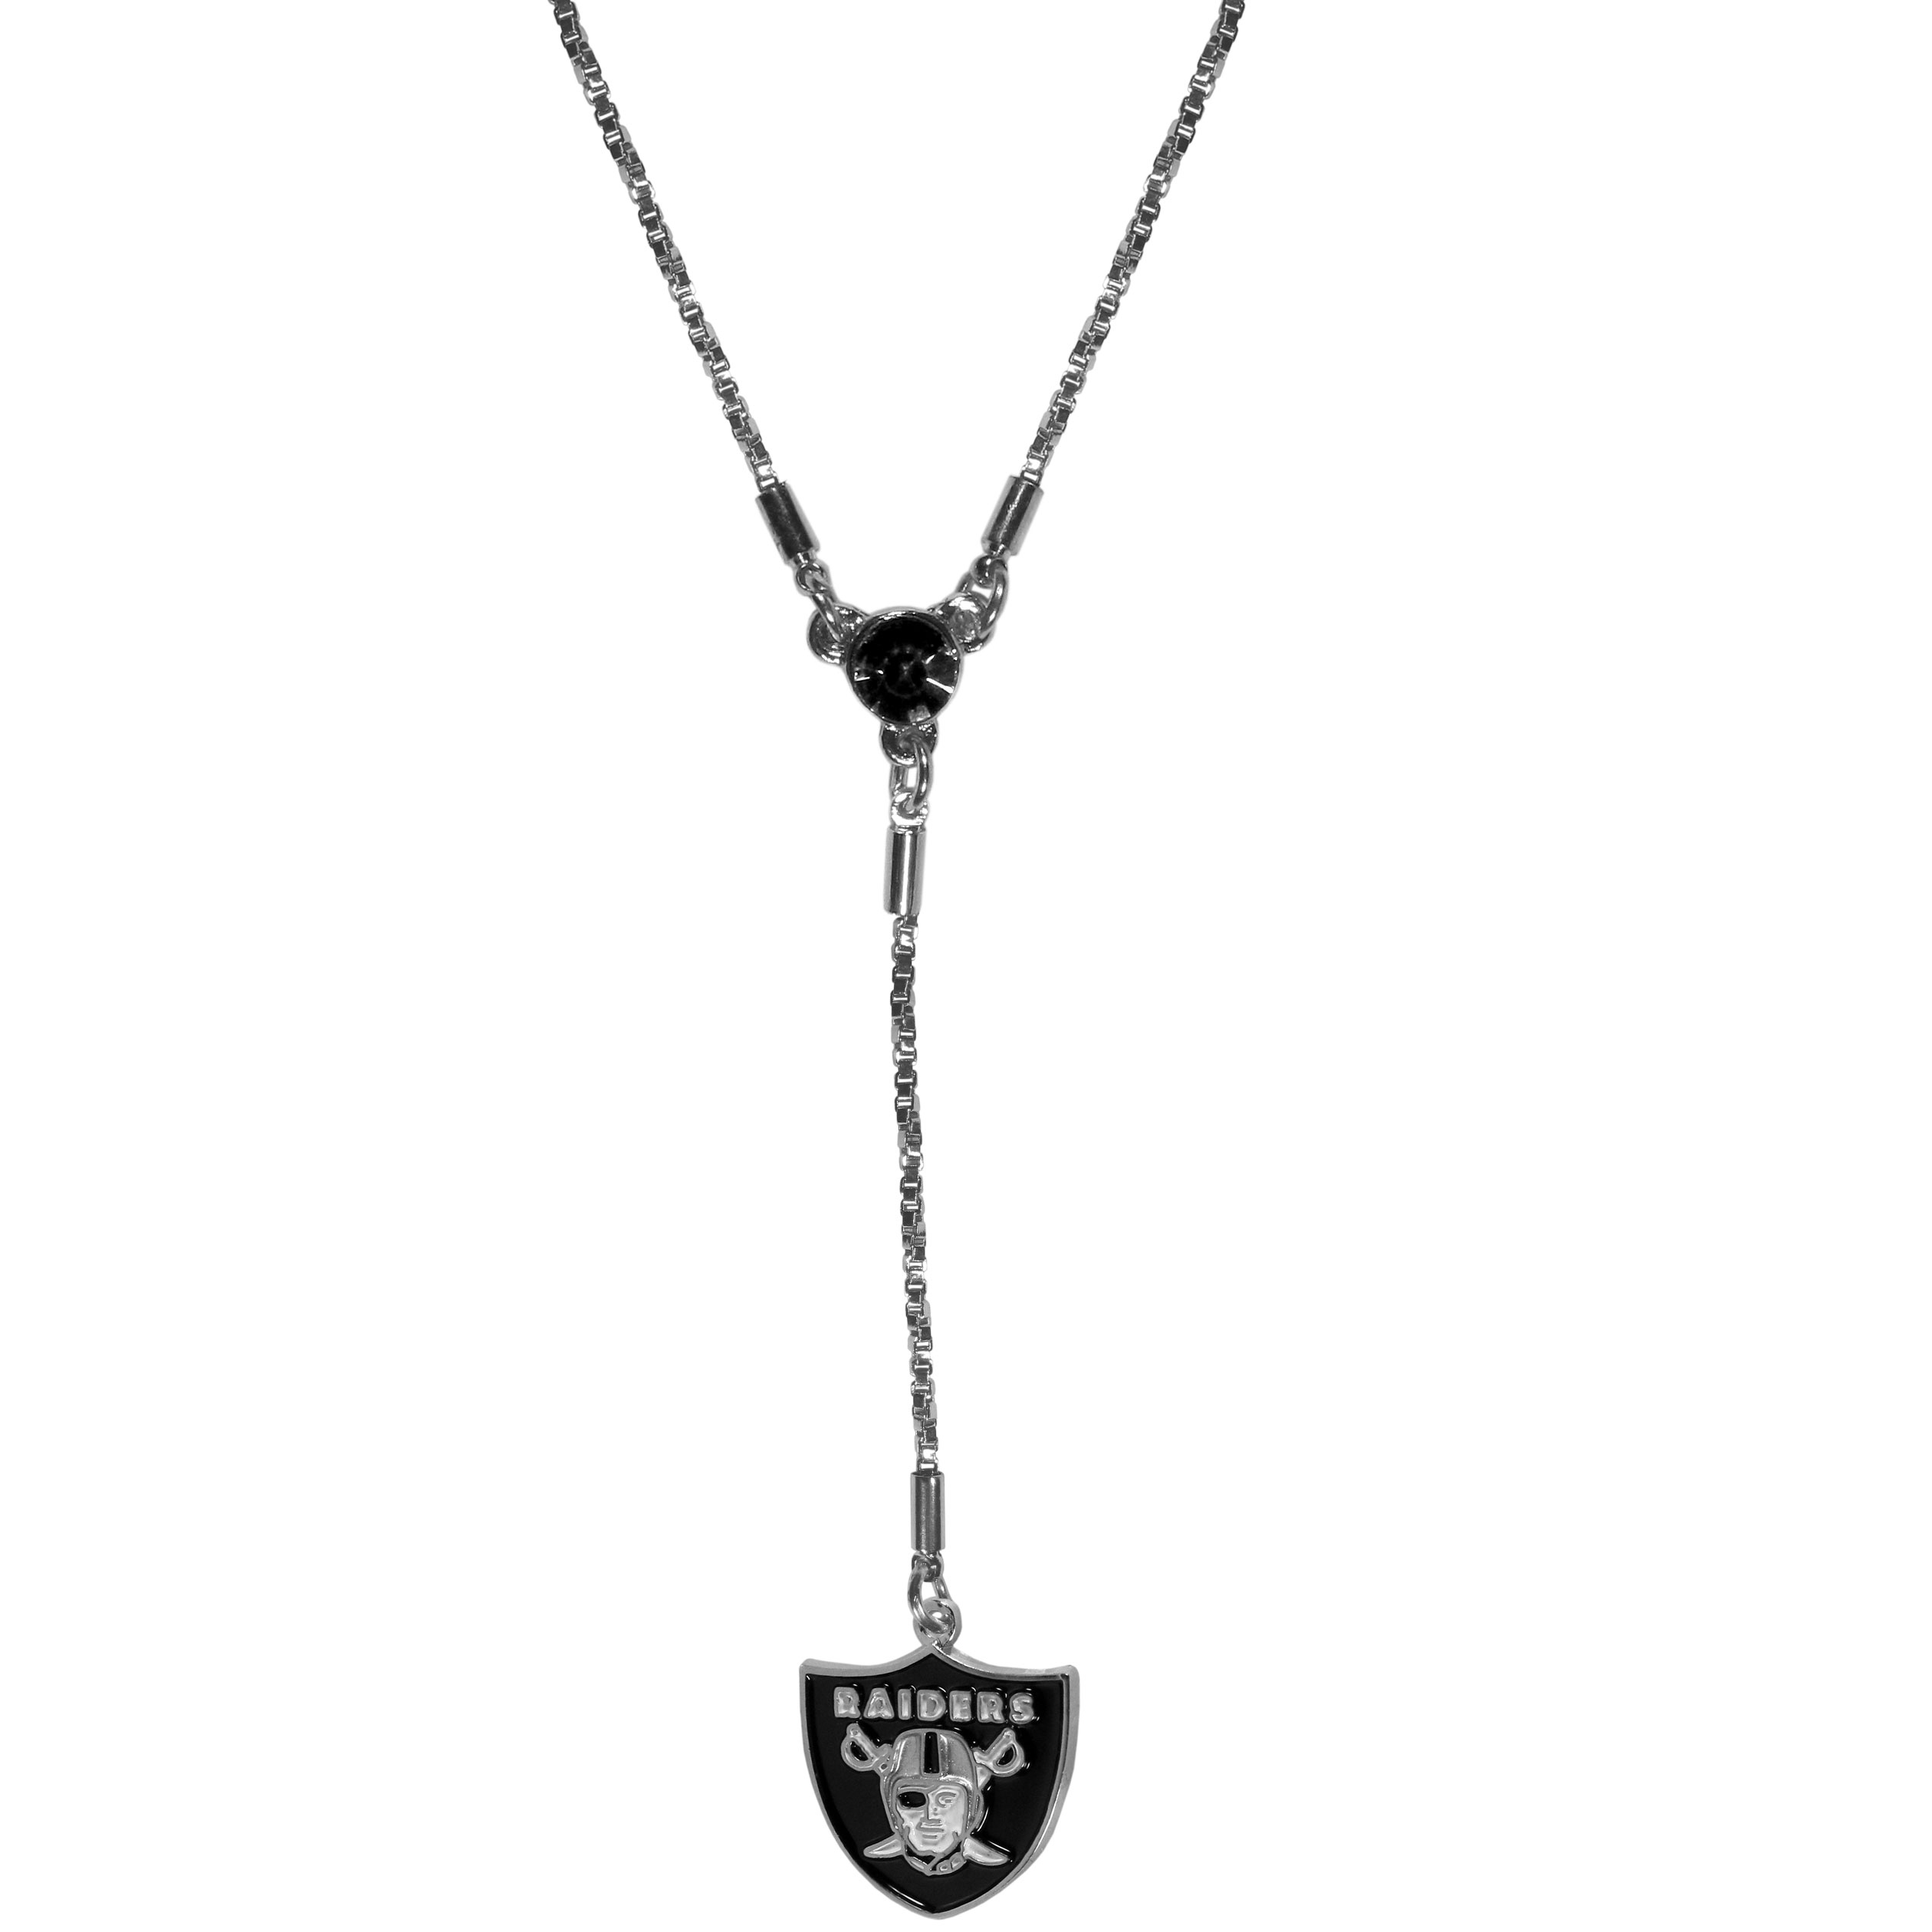 Oakland Raiders Lariat Necklace - This designer look is a stylish version of the classic lariat necklace. The chic box chain is 16 inches long with a 2 inch extender, the Y drop features a large team colored crystal with an expertly carved team charm. This trendy look is a perfect blend of sporty and chic making is a mush-have fashion accessory for the fashion-forward Oakland Raiders fan.